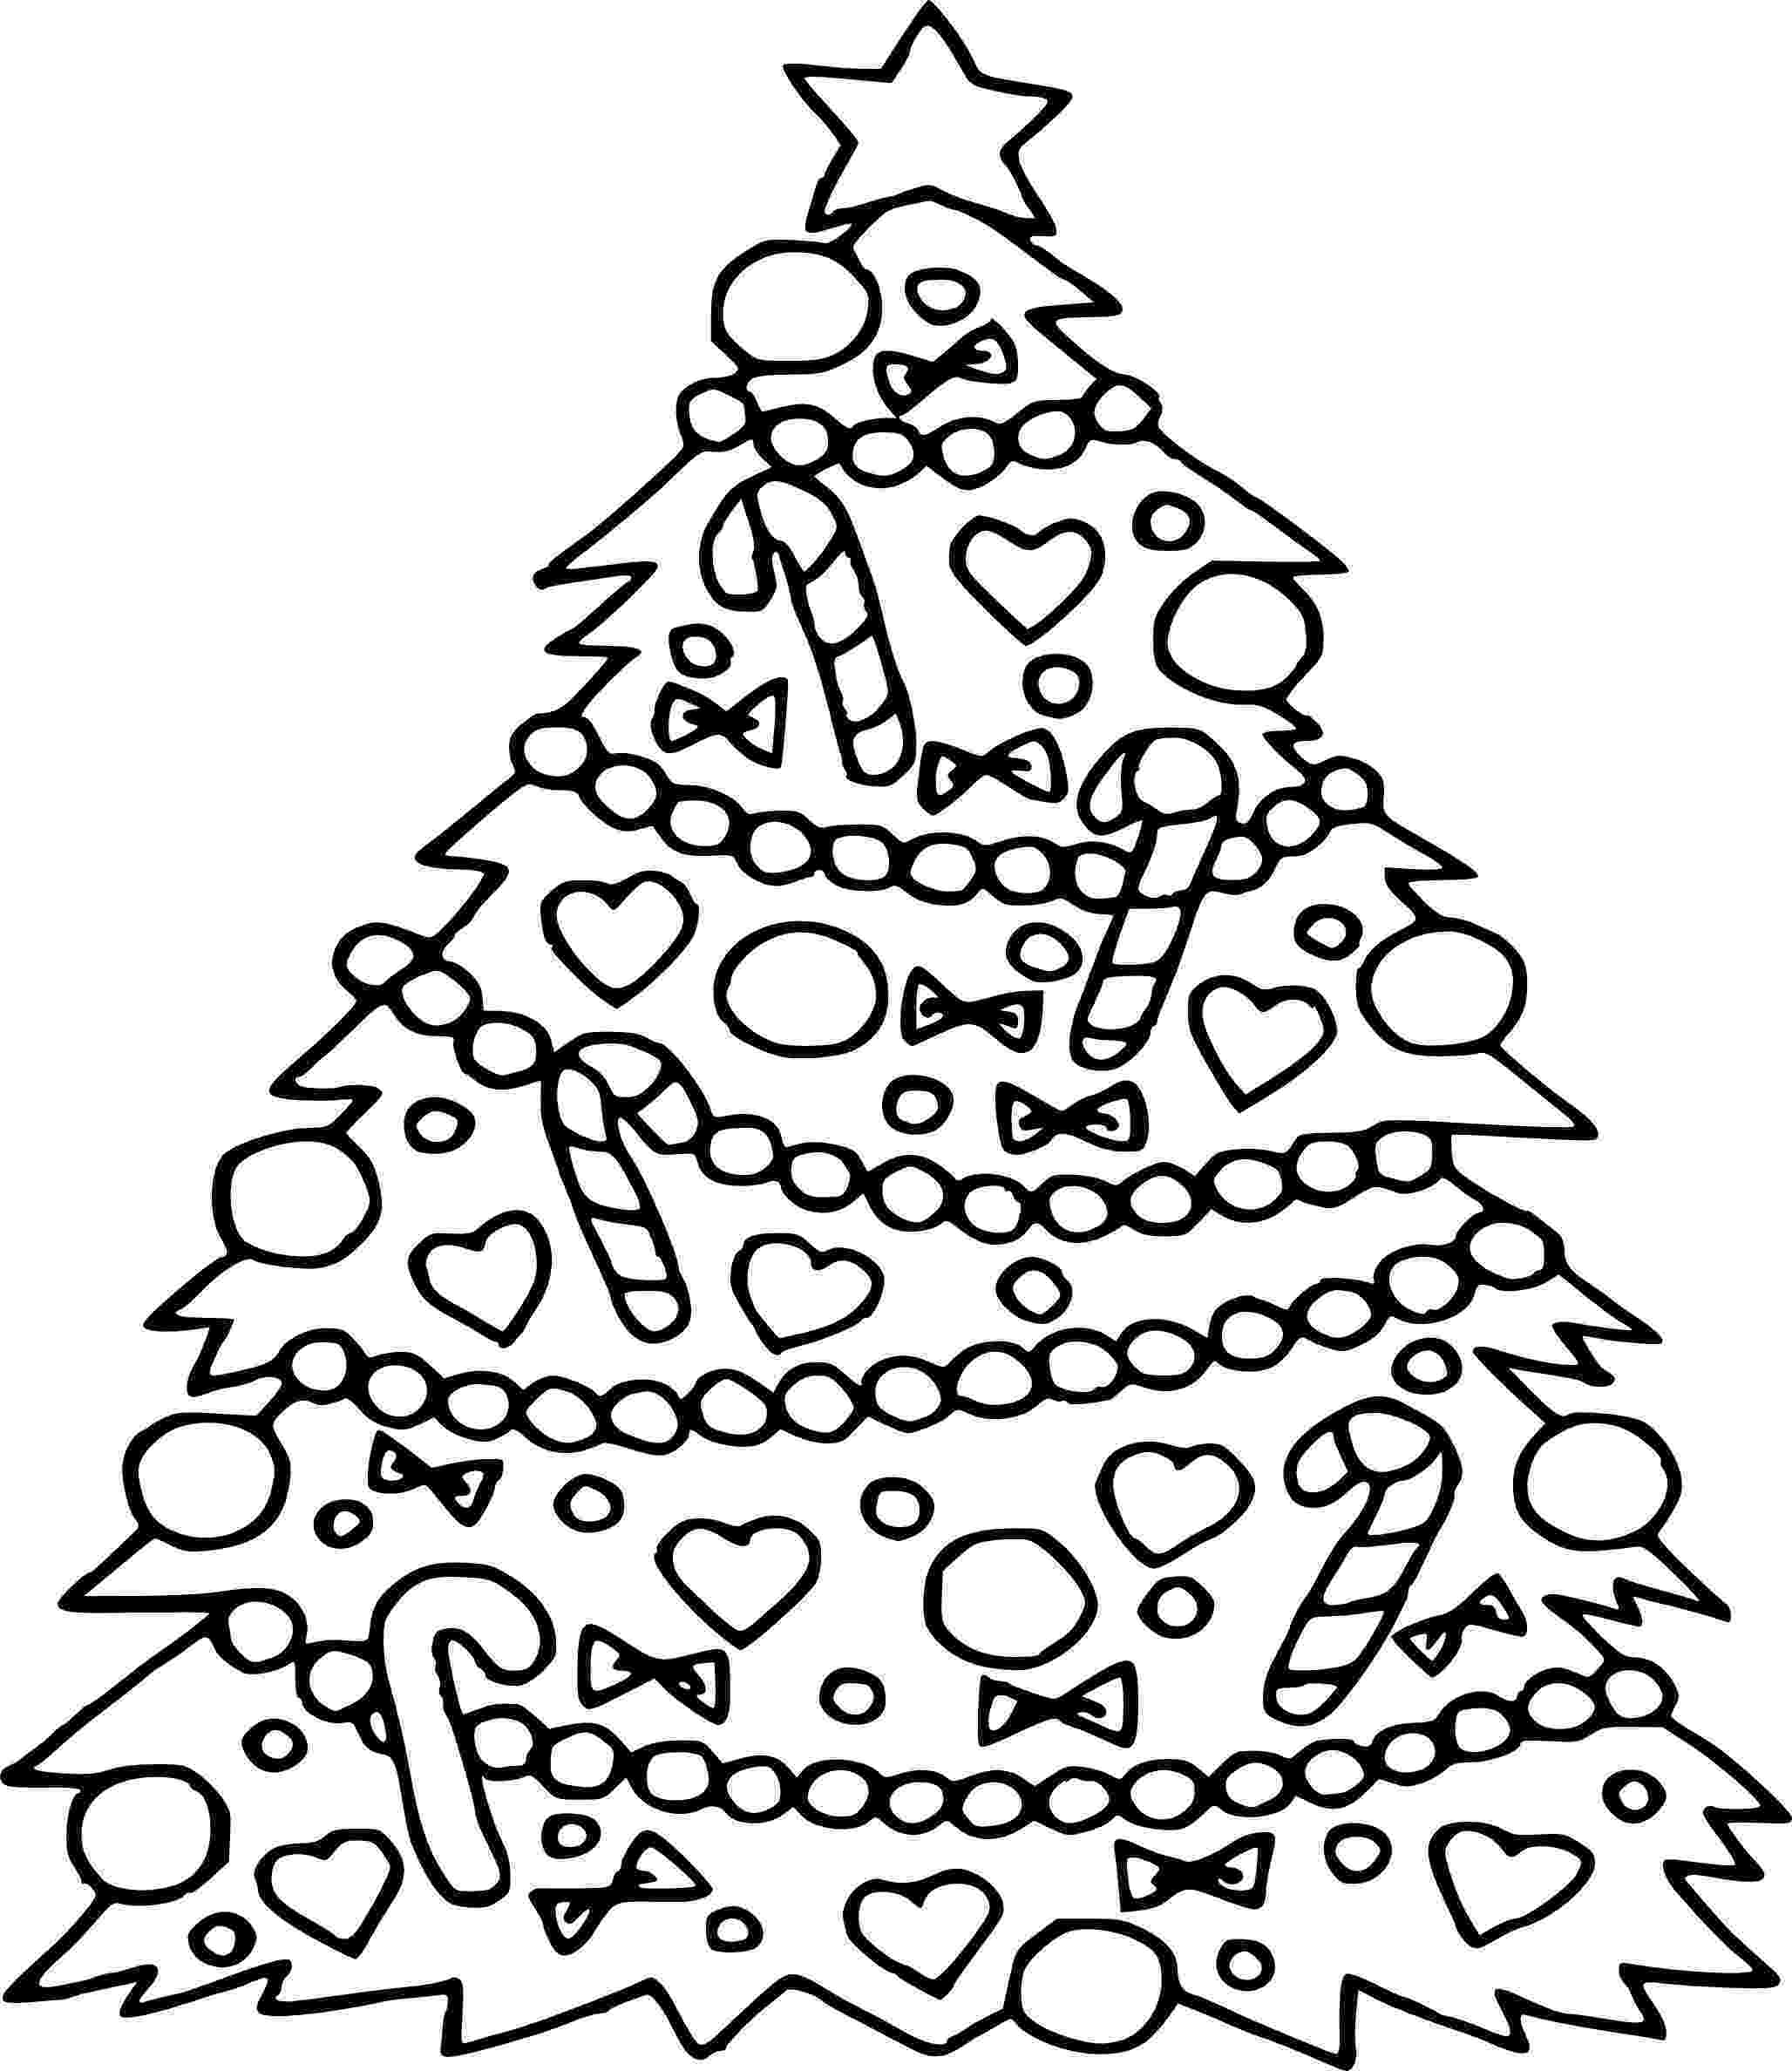 coloring pages christmas tree christmas tree coloring page pages coloring tree christmas